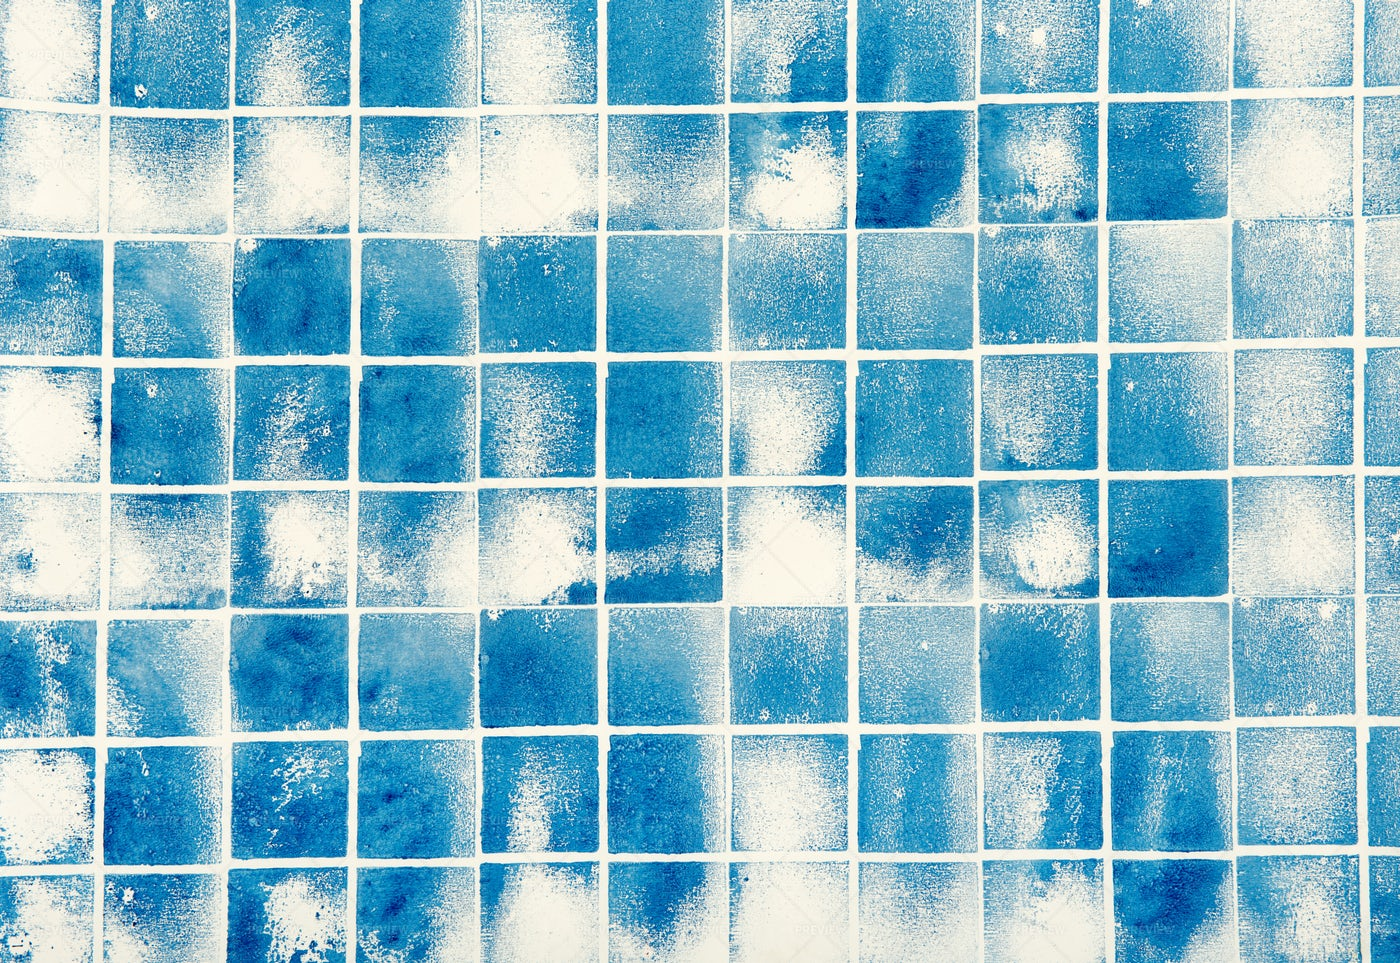 Blue And White Surface: Stock Photos